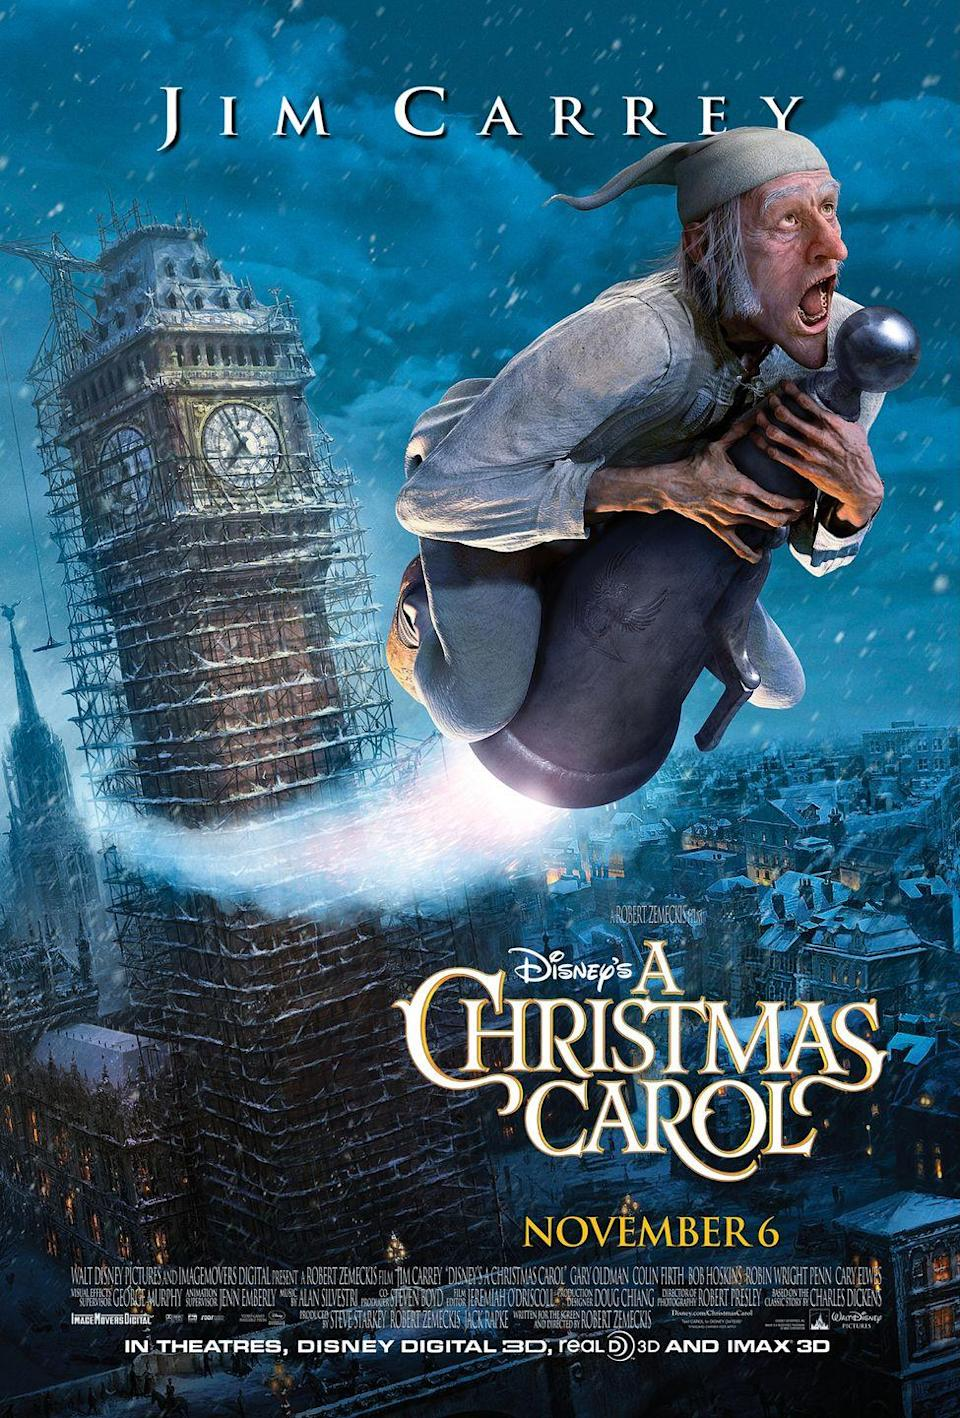 """<p>A must-watch for the entire family, Disney's animated take on the classic Charles Dickens story offers a unique visual experience (and also stars the hilarious Jim Carrey as the curmudgeonly Scrooge!).<br></p><p><a class=""""link rapid-noclick-resp"""" href=""""https://www.amazon.com/Disneys-Christmas-Carol-Jim-Carrey/dp/B004EK926K?tag=syn-yahoo-20&ascsubtag=%5Bartid%7C10055.g.1315%5Bsrc%7Cyahoo-us"""" rel=""""nofollow noopener"""" target=""""_blank"""" data-ylk=""""slk:WATCH NOW"""">WATCH NOW</a></p><p><strong>RELATED: </strong><a href=""""https://www.goodhousekeeping.com/holidays/christmas-ideas/g23601545/christmas-traditions-kids-family/"""" rel=""""nofollow noopener"""" target=""""_blank"""" data-ylk=""""slk:20+ Easy Christmas Traditions to Start With Your Family"""" class=""""link rapid-noclick-resp"""">20+ Easy Christmas Traditions to Start With Your Family</a></p>"""